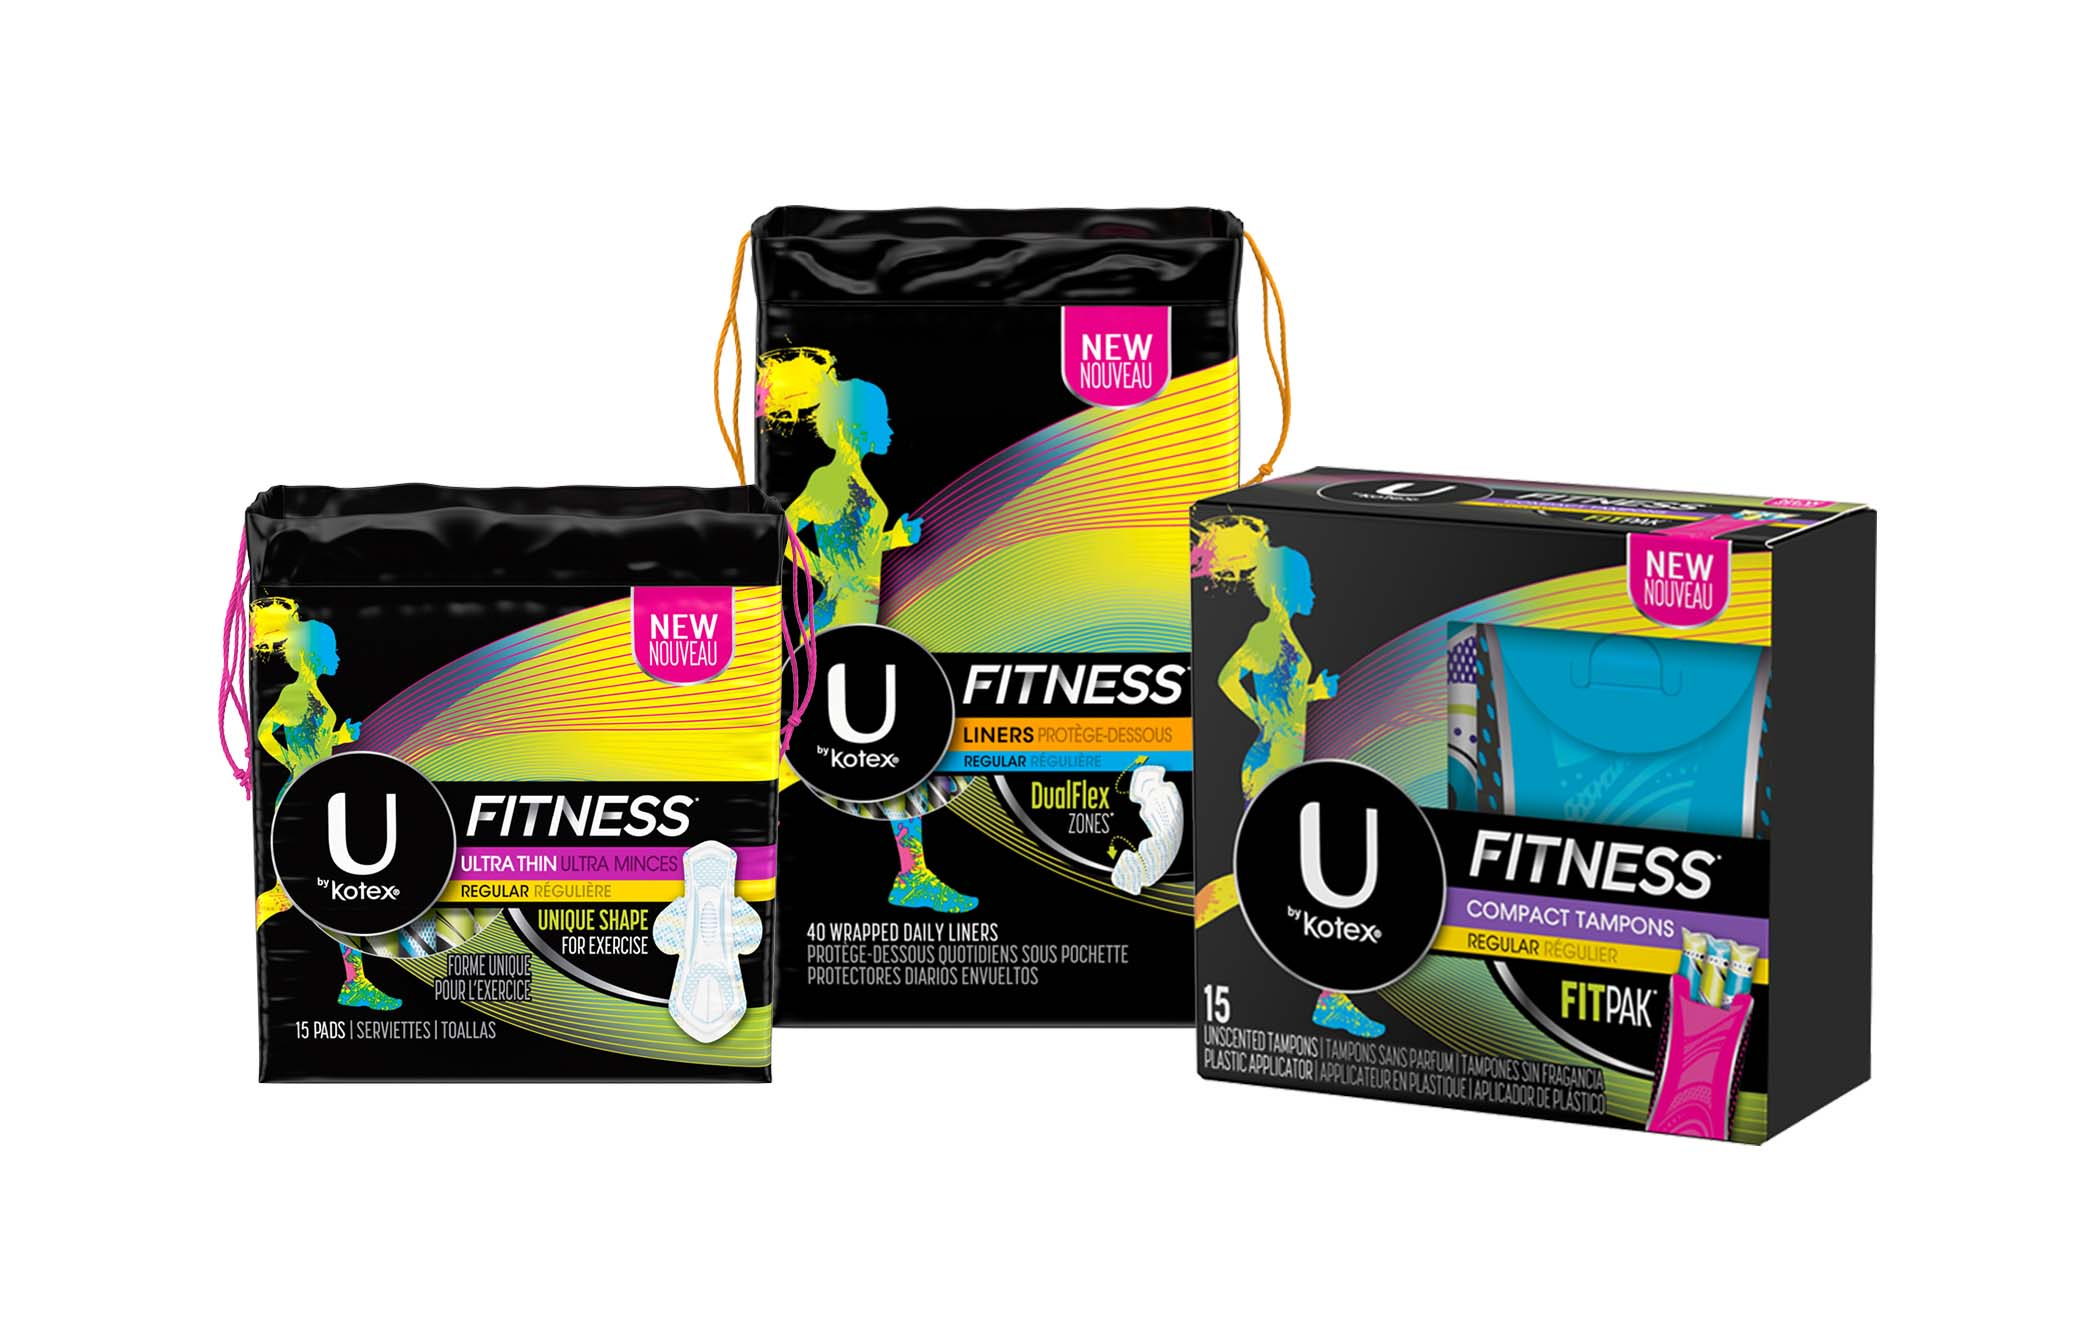 New products, including U by Kotex® FITNESS* Tampons with FITPAK*, U by Kotex® FITNESS* Liners and U by Kotex® FITNESS* Ultra Thin Pads, were designed to enable the spectrum of fitness goals.